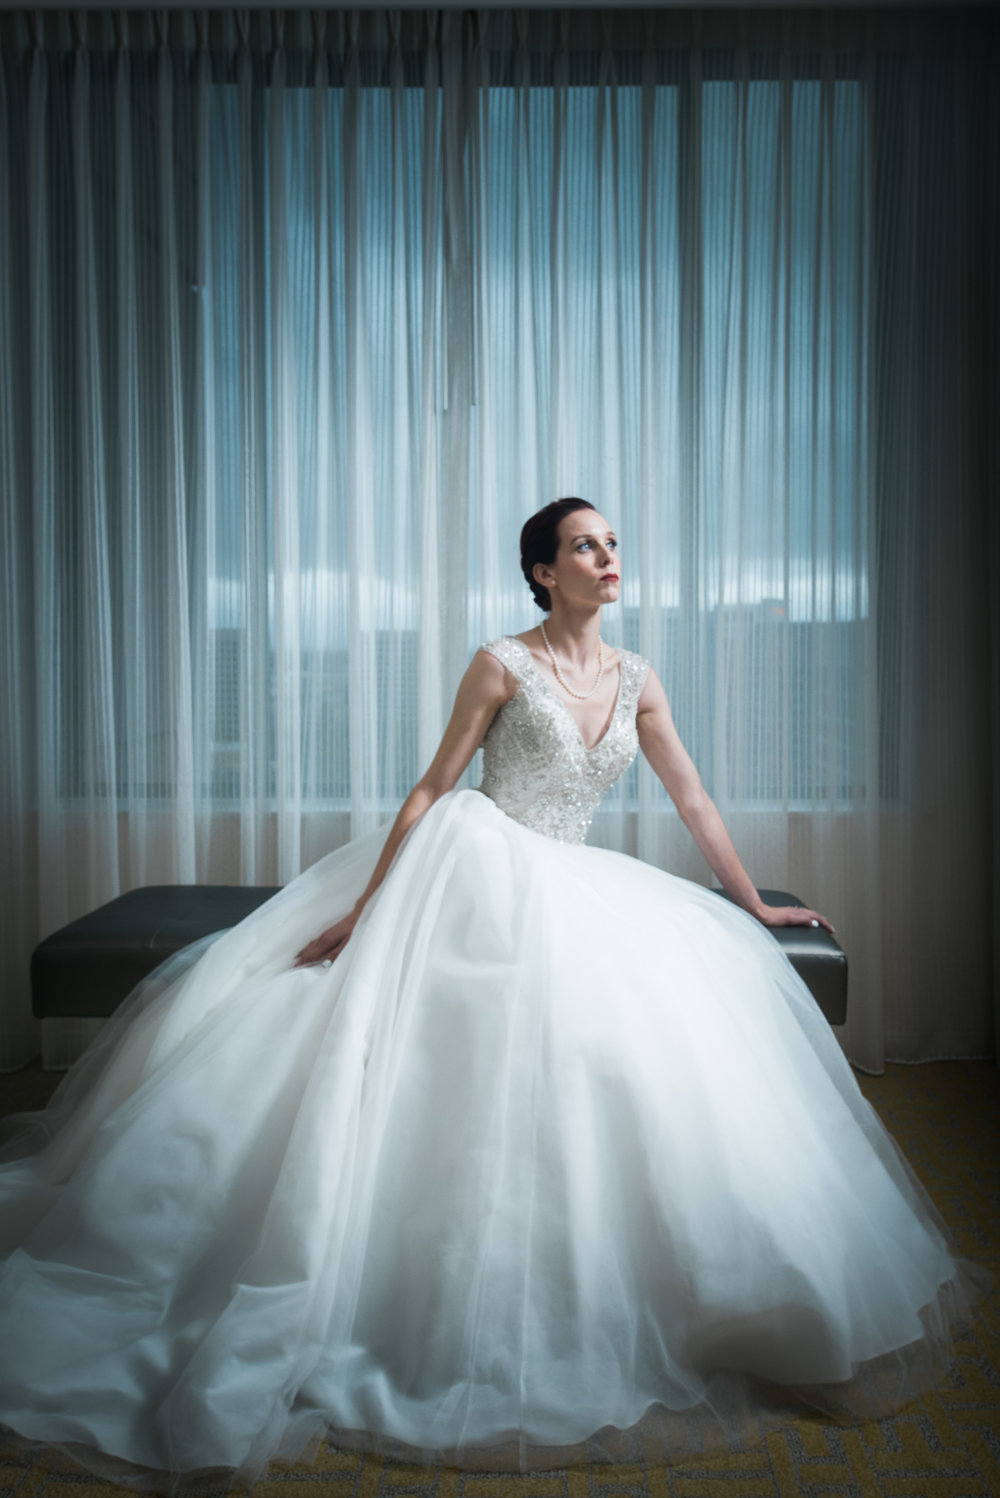 bride in gown with large tulle bottom and beaded cap sleeve top in hotel room makeup is classic with red lip by kim baker beauty san jose california makeup artist